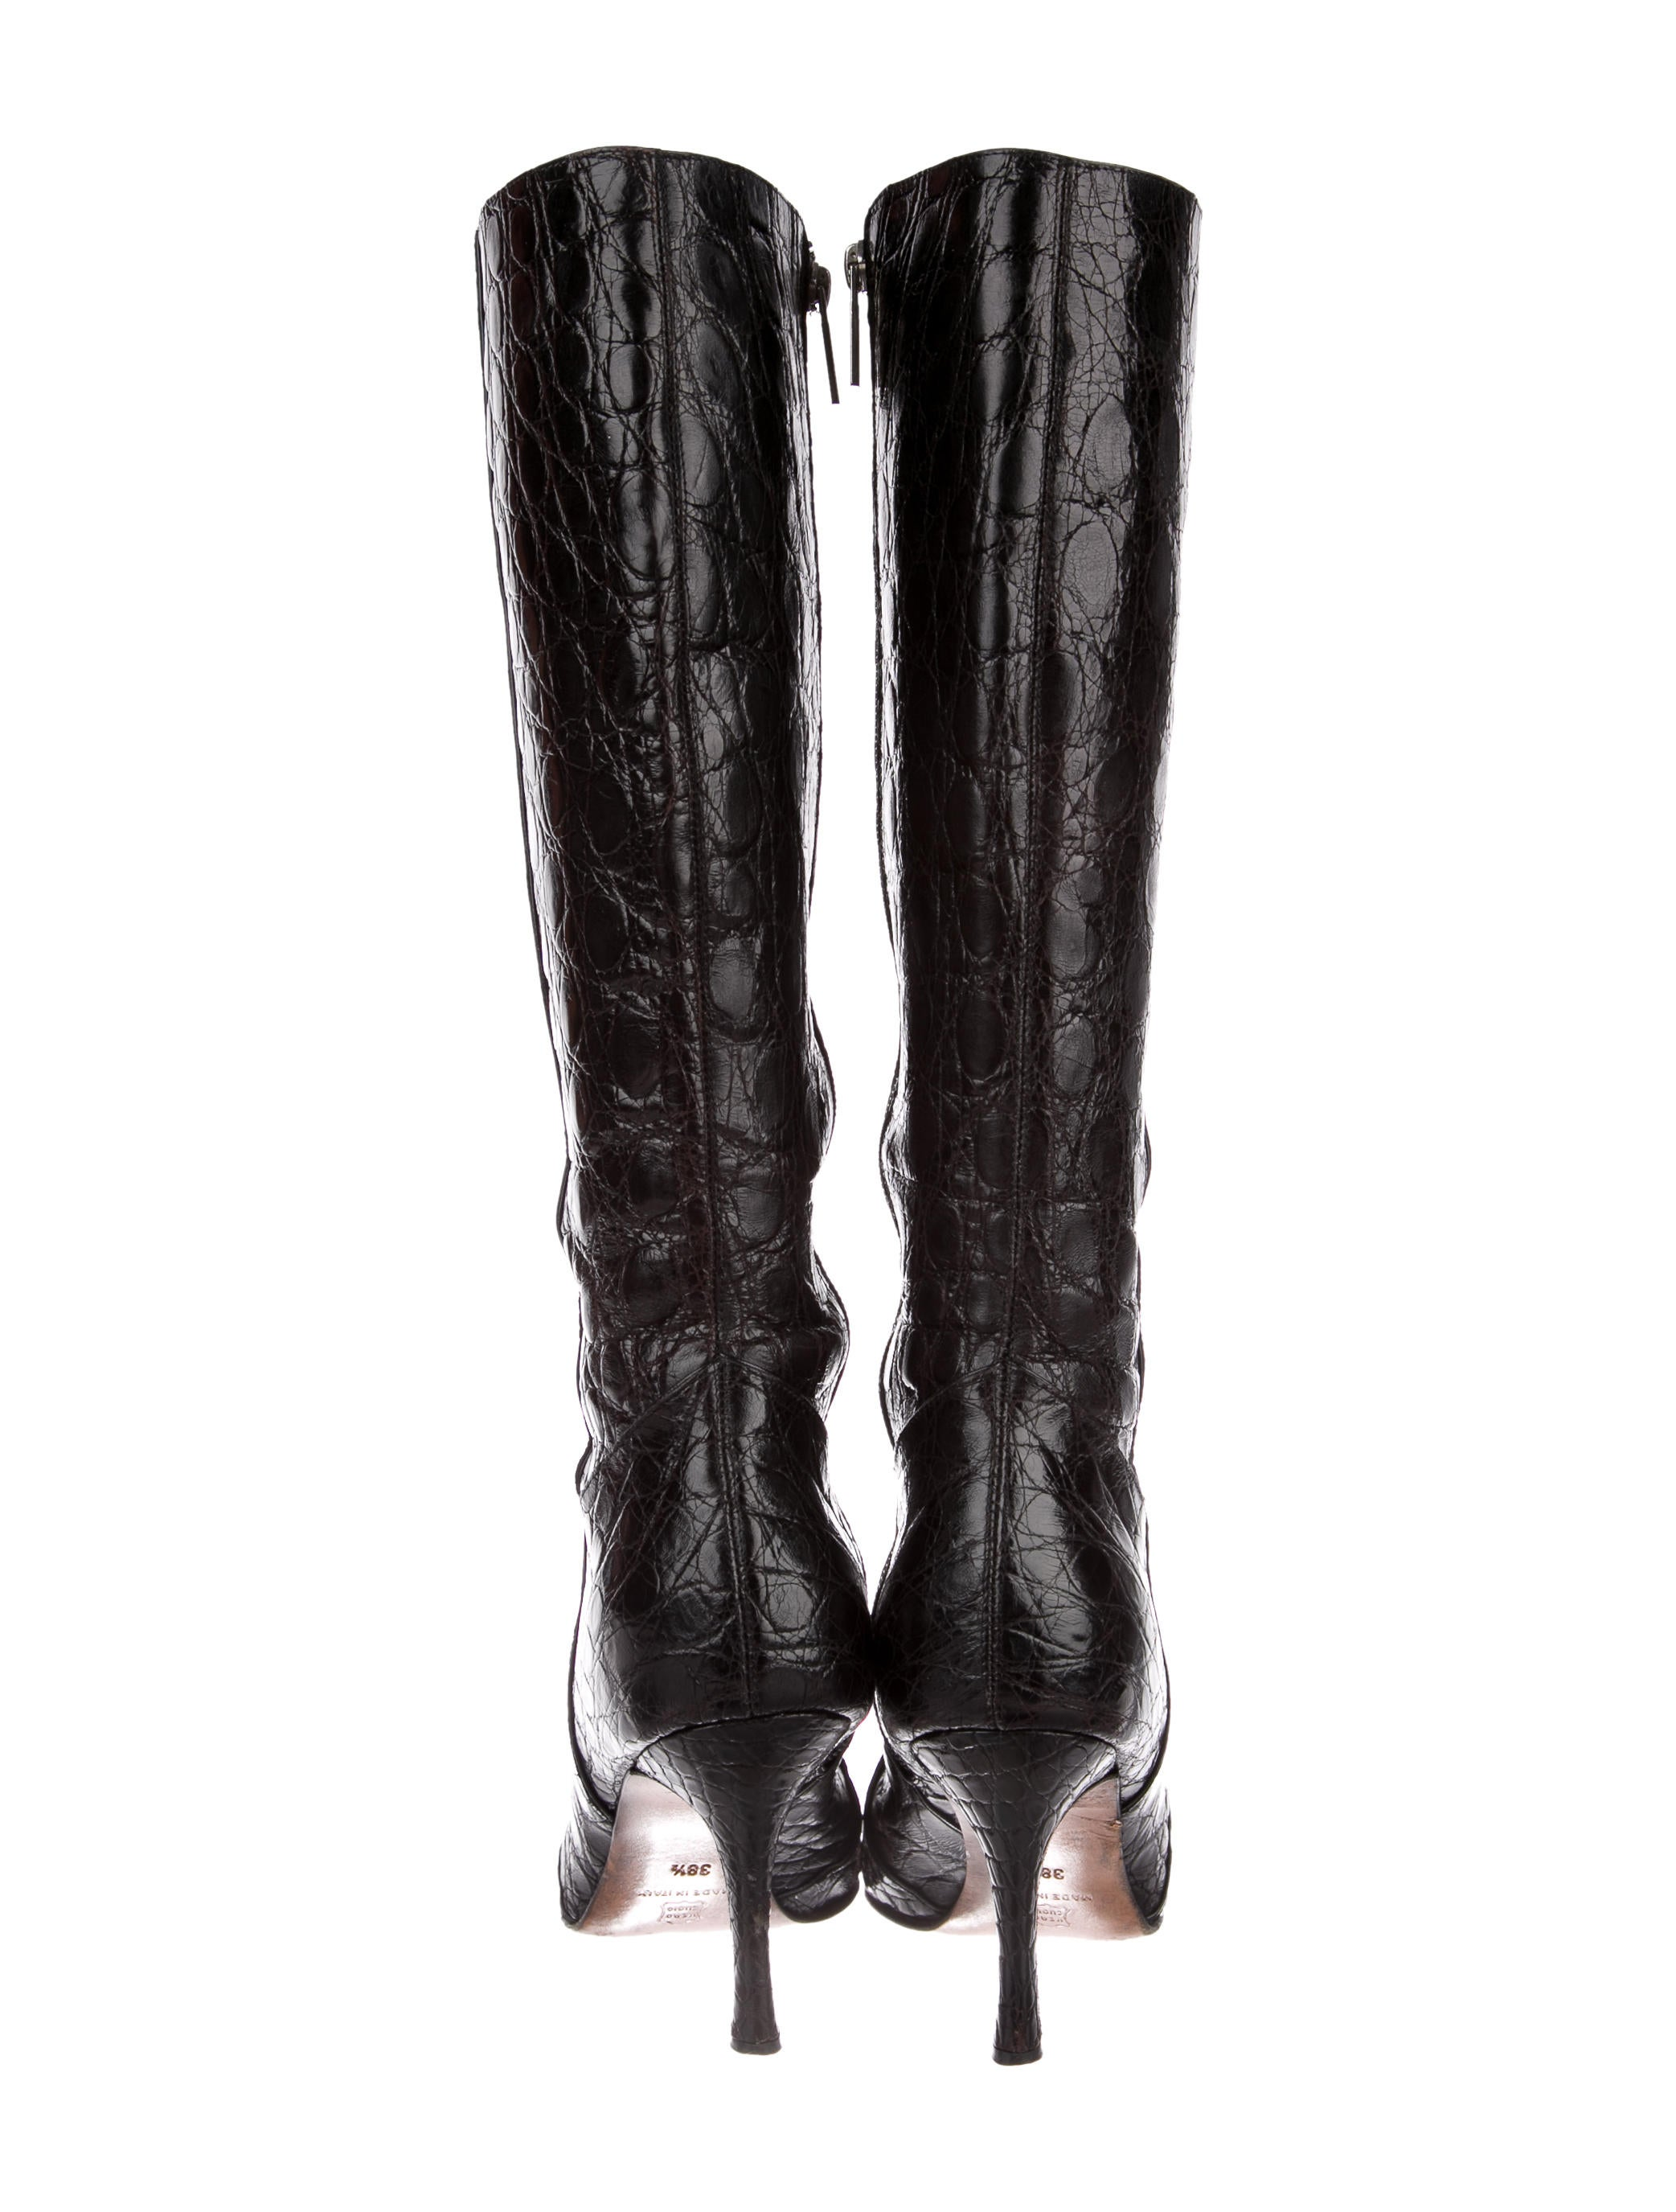 Domenico Vacca Alligator Knee-High Boots